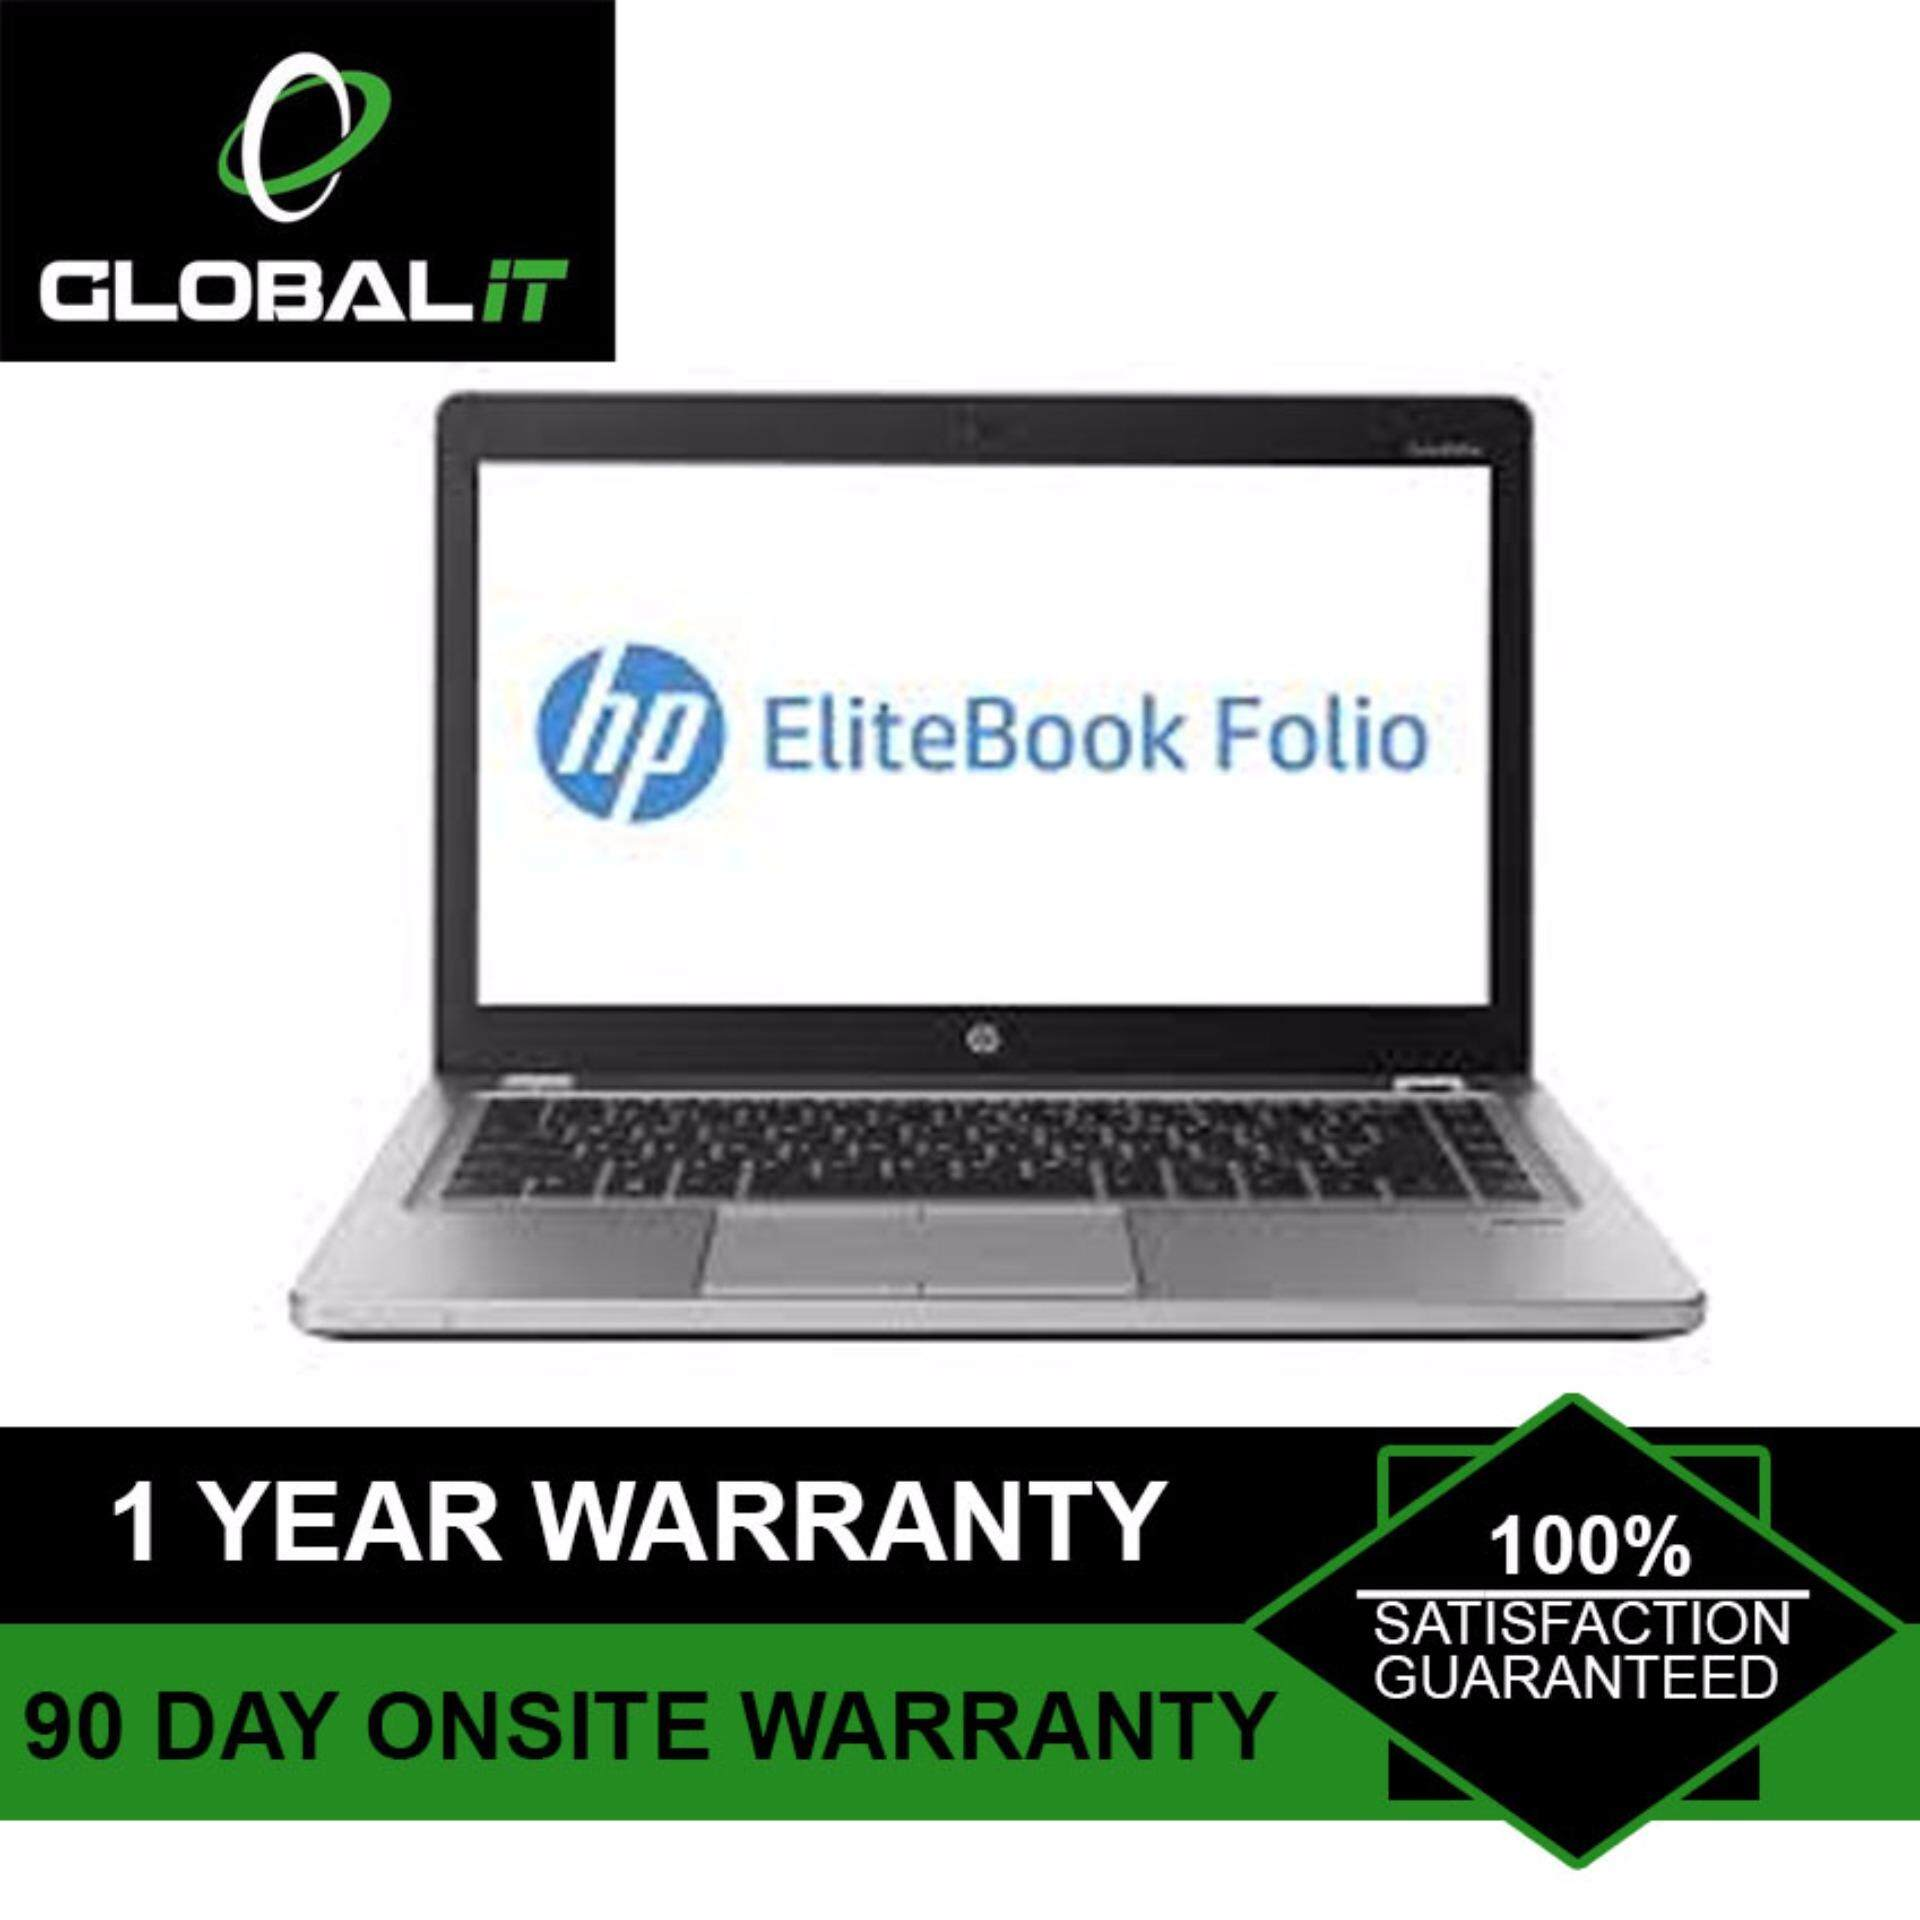 ( Refurbished Notebook) Hp Folio 9470m-i5 Malaysia